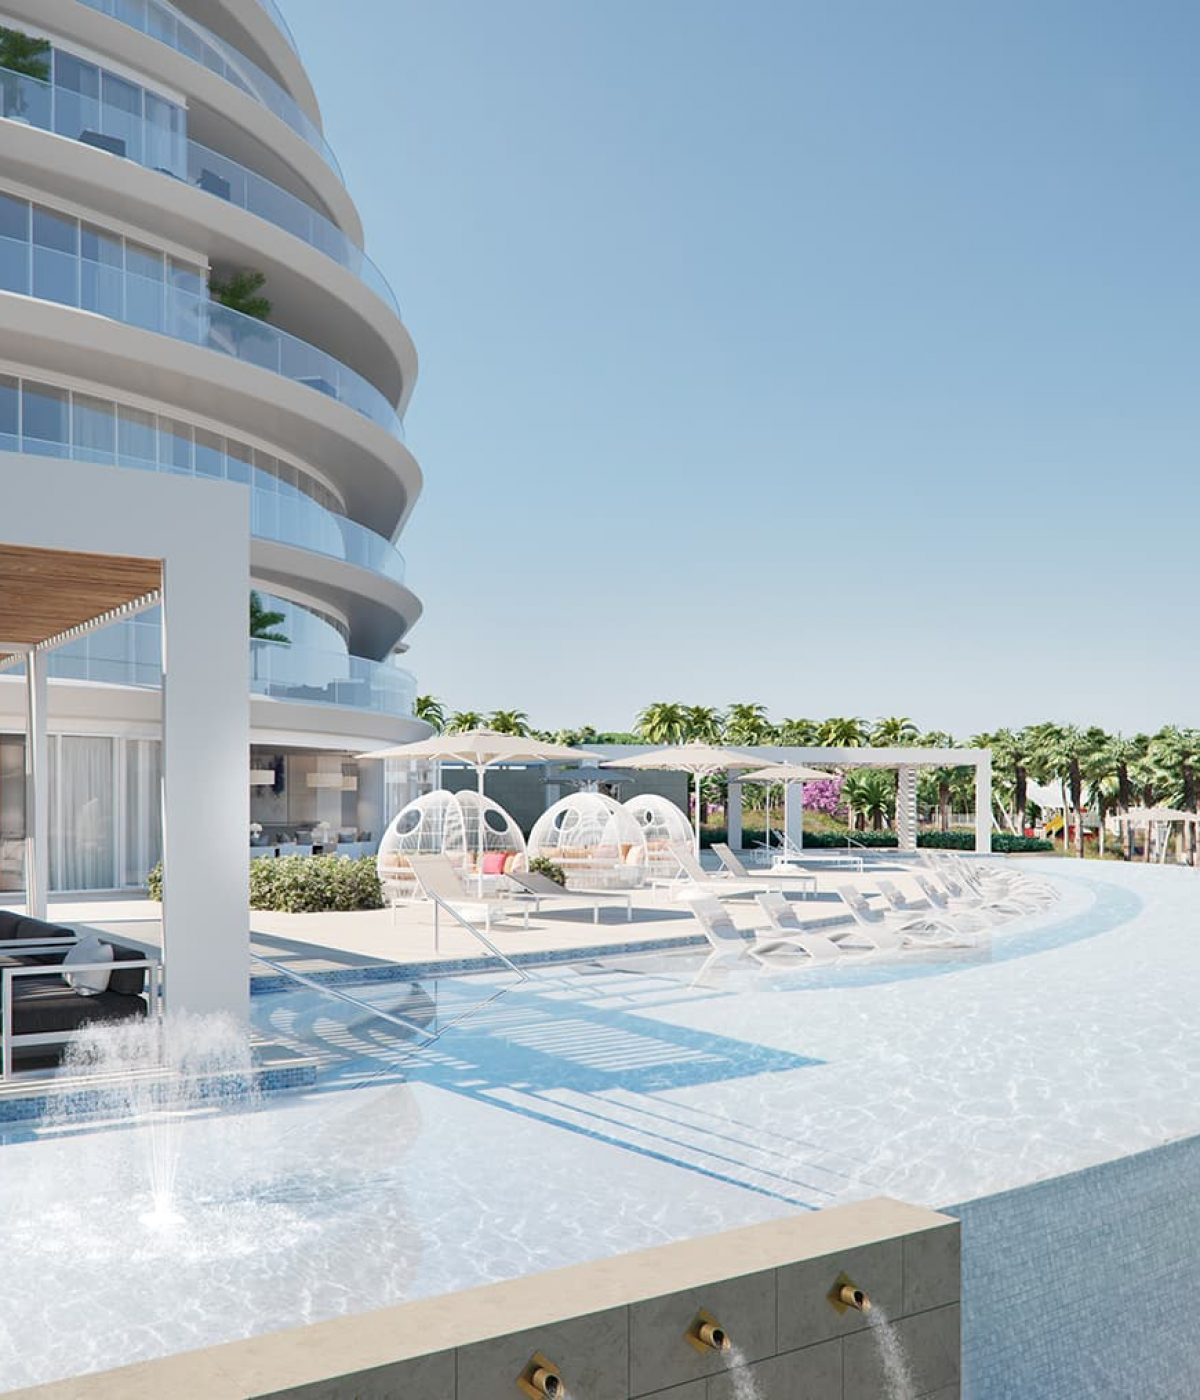 A luxury pool at the W Residences apartments in Palm Jumeirah, Dubai